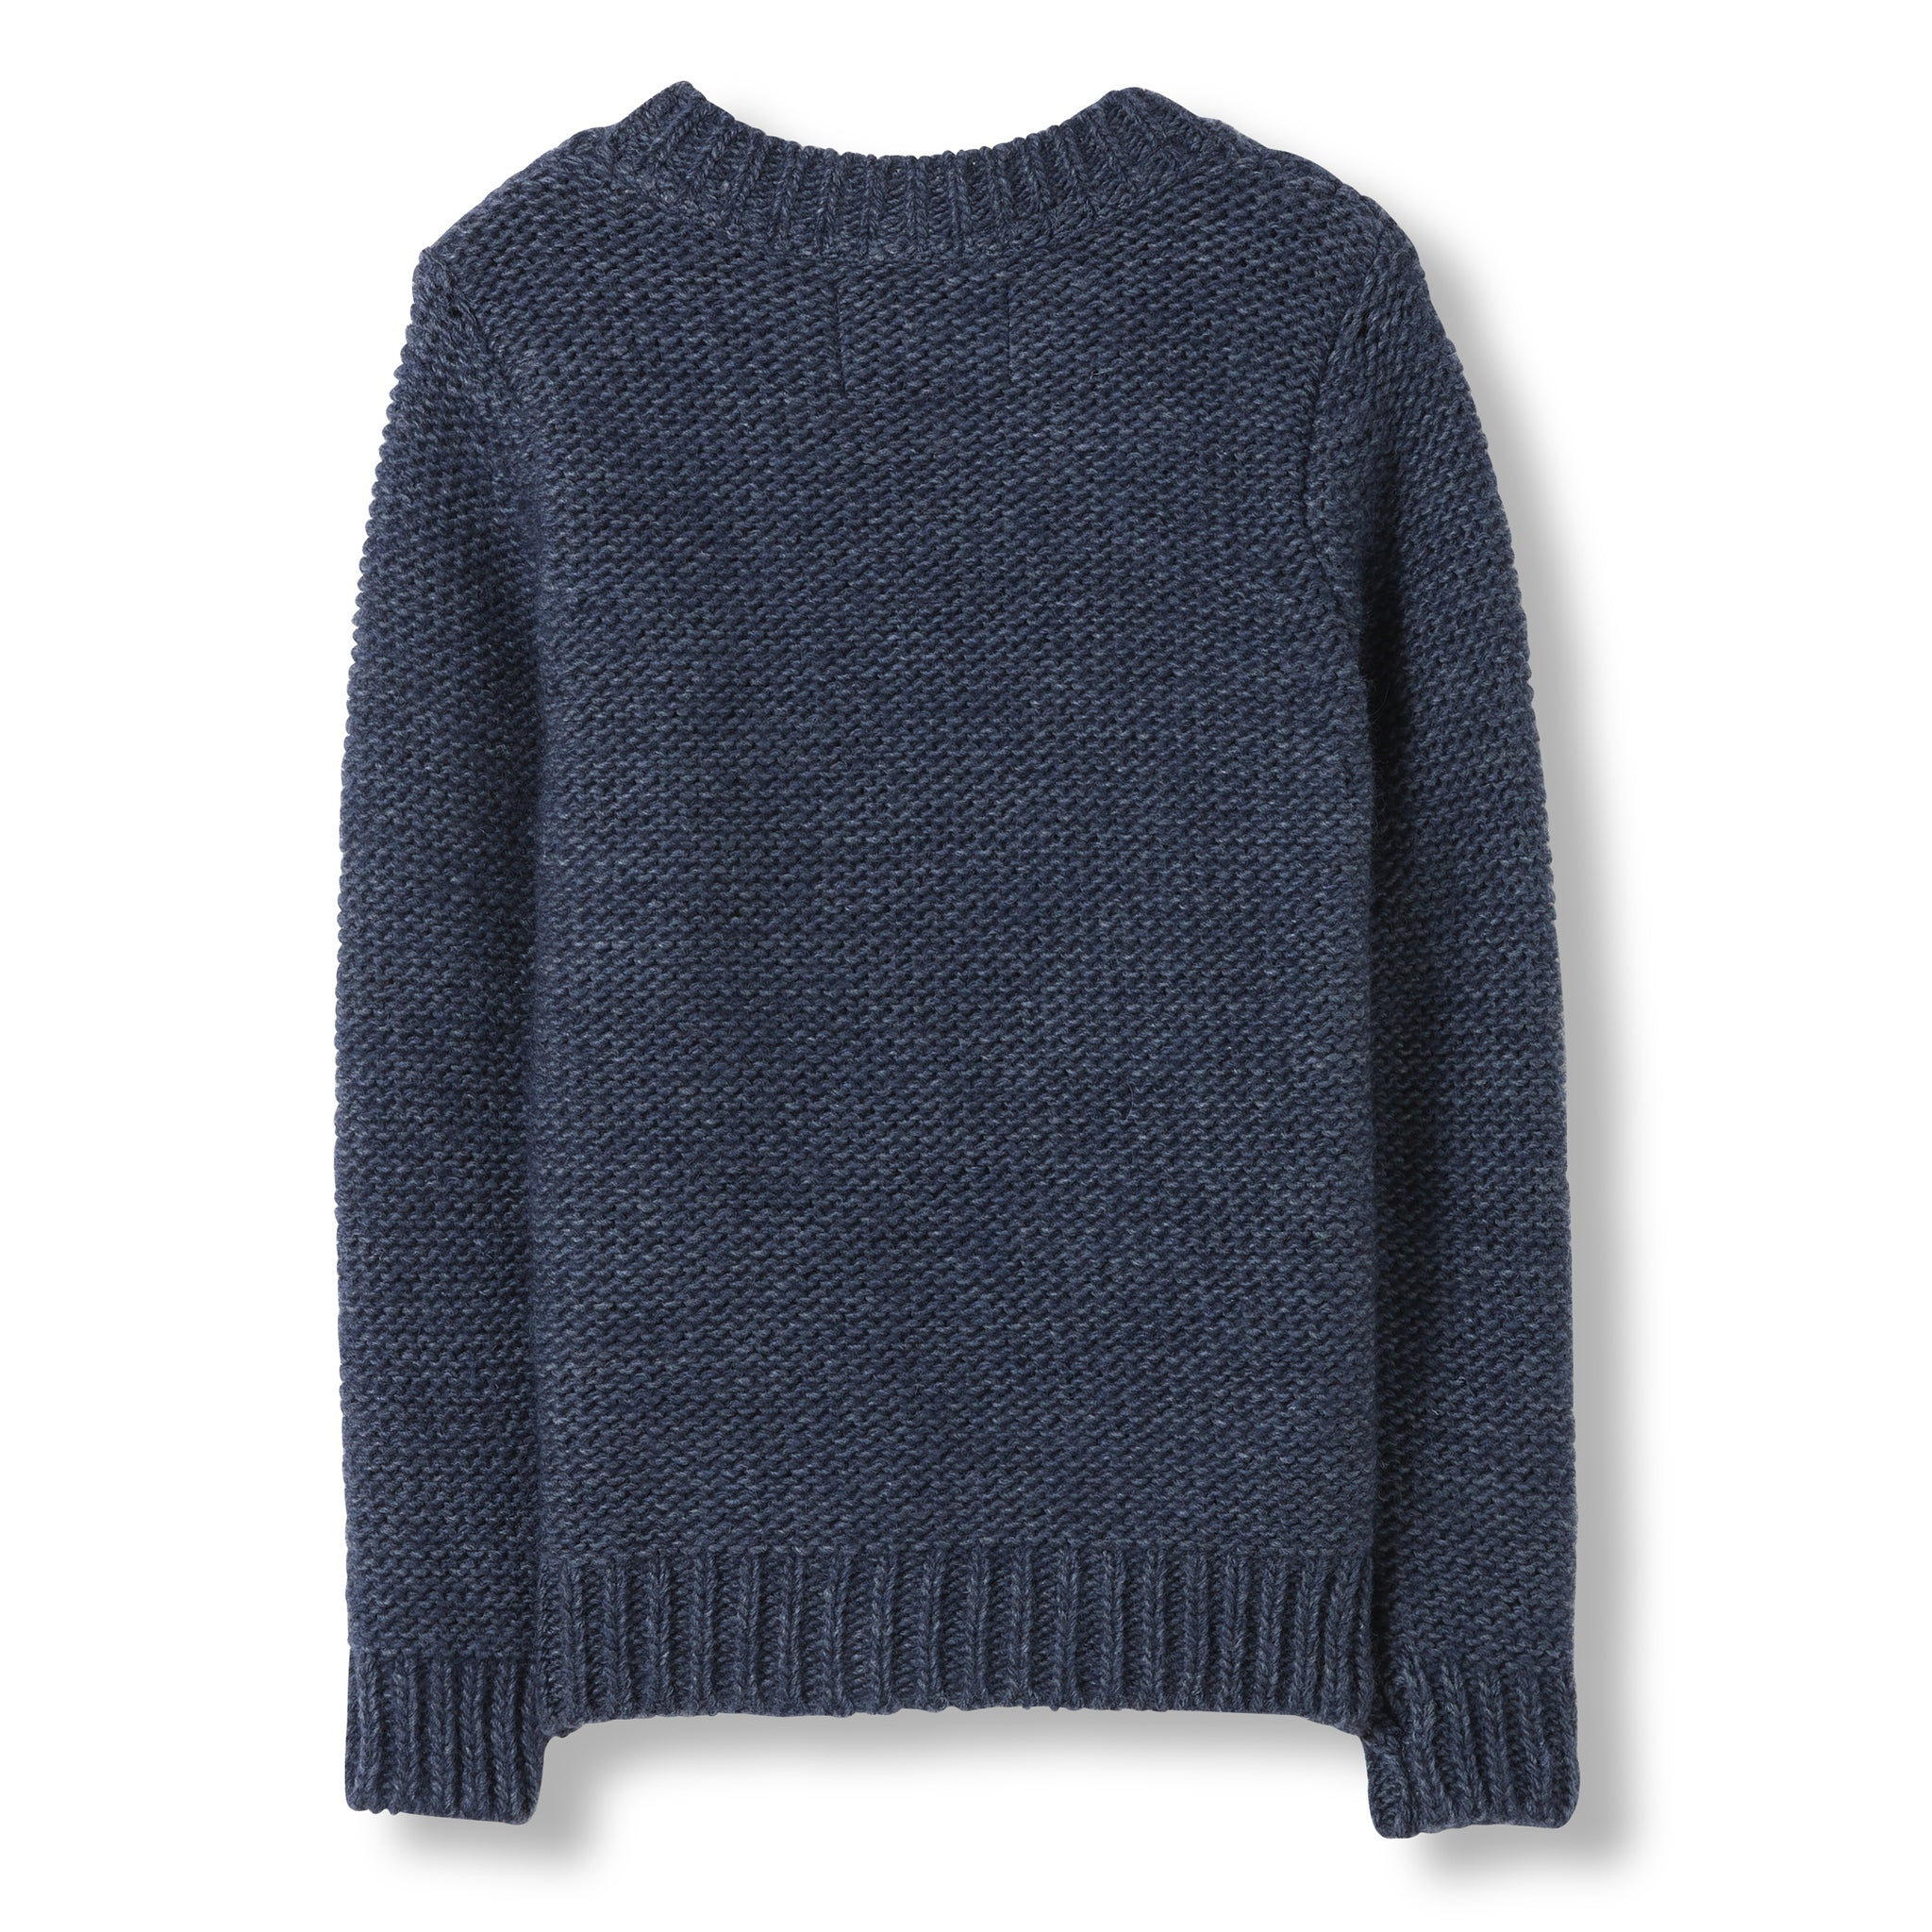 AVERY Indigo -  Heavy Knitted Round Neck Cable Jumper 2